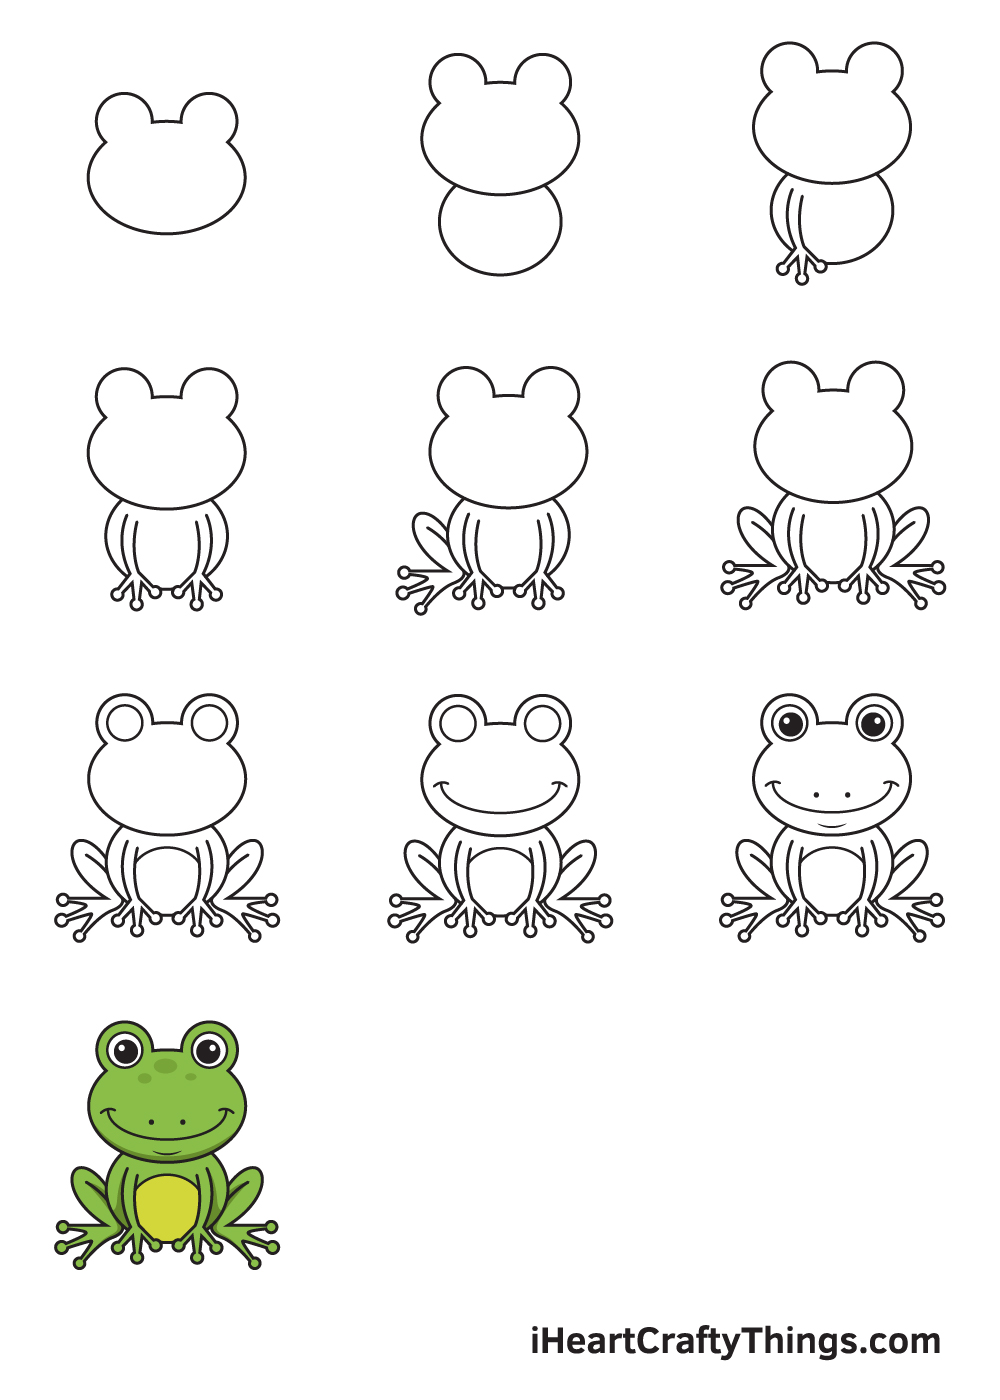 Drawing Frog in 9 Easy Steps